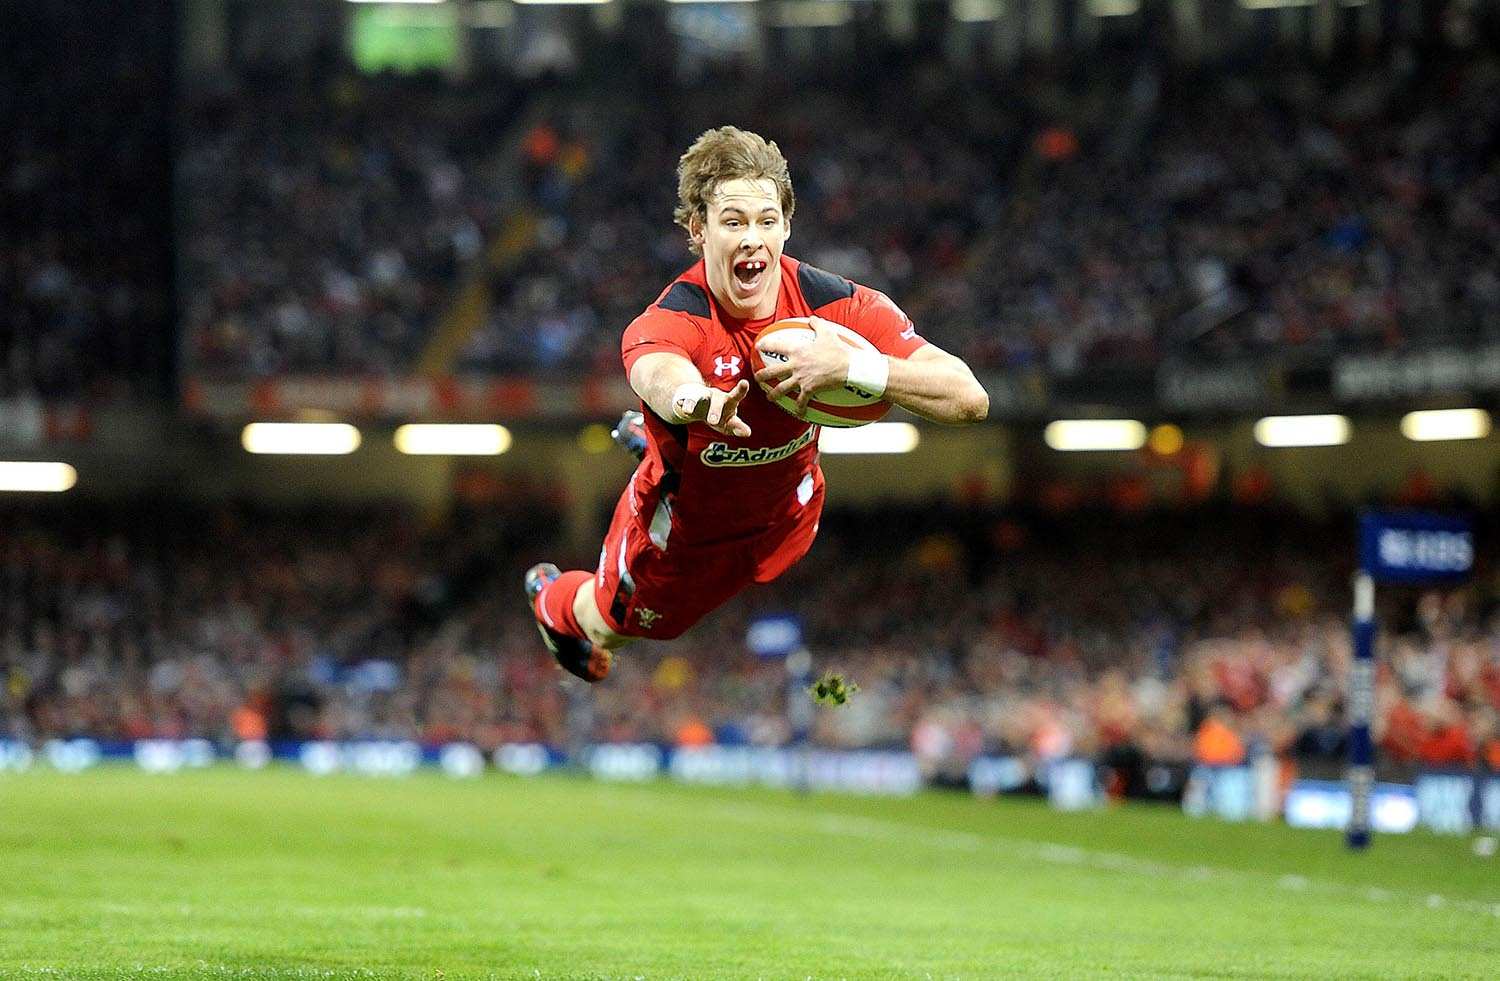 Liam Williams of Wales scores a try